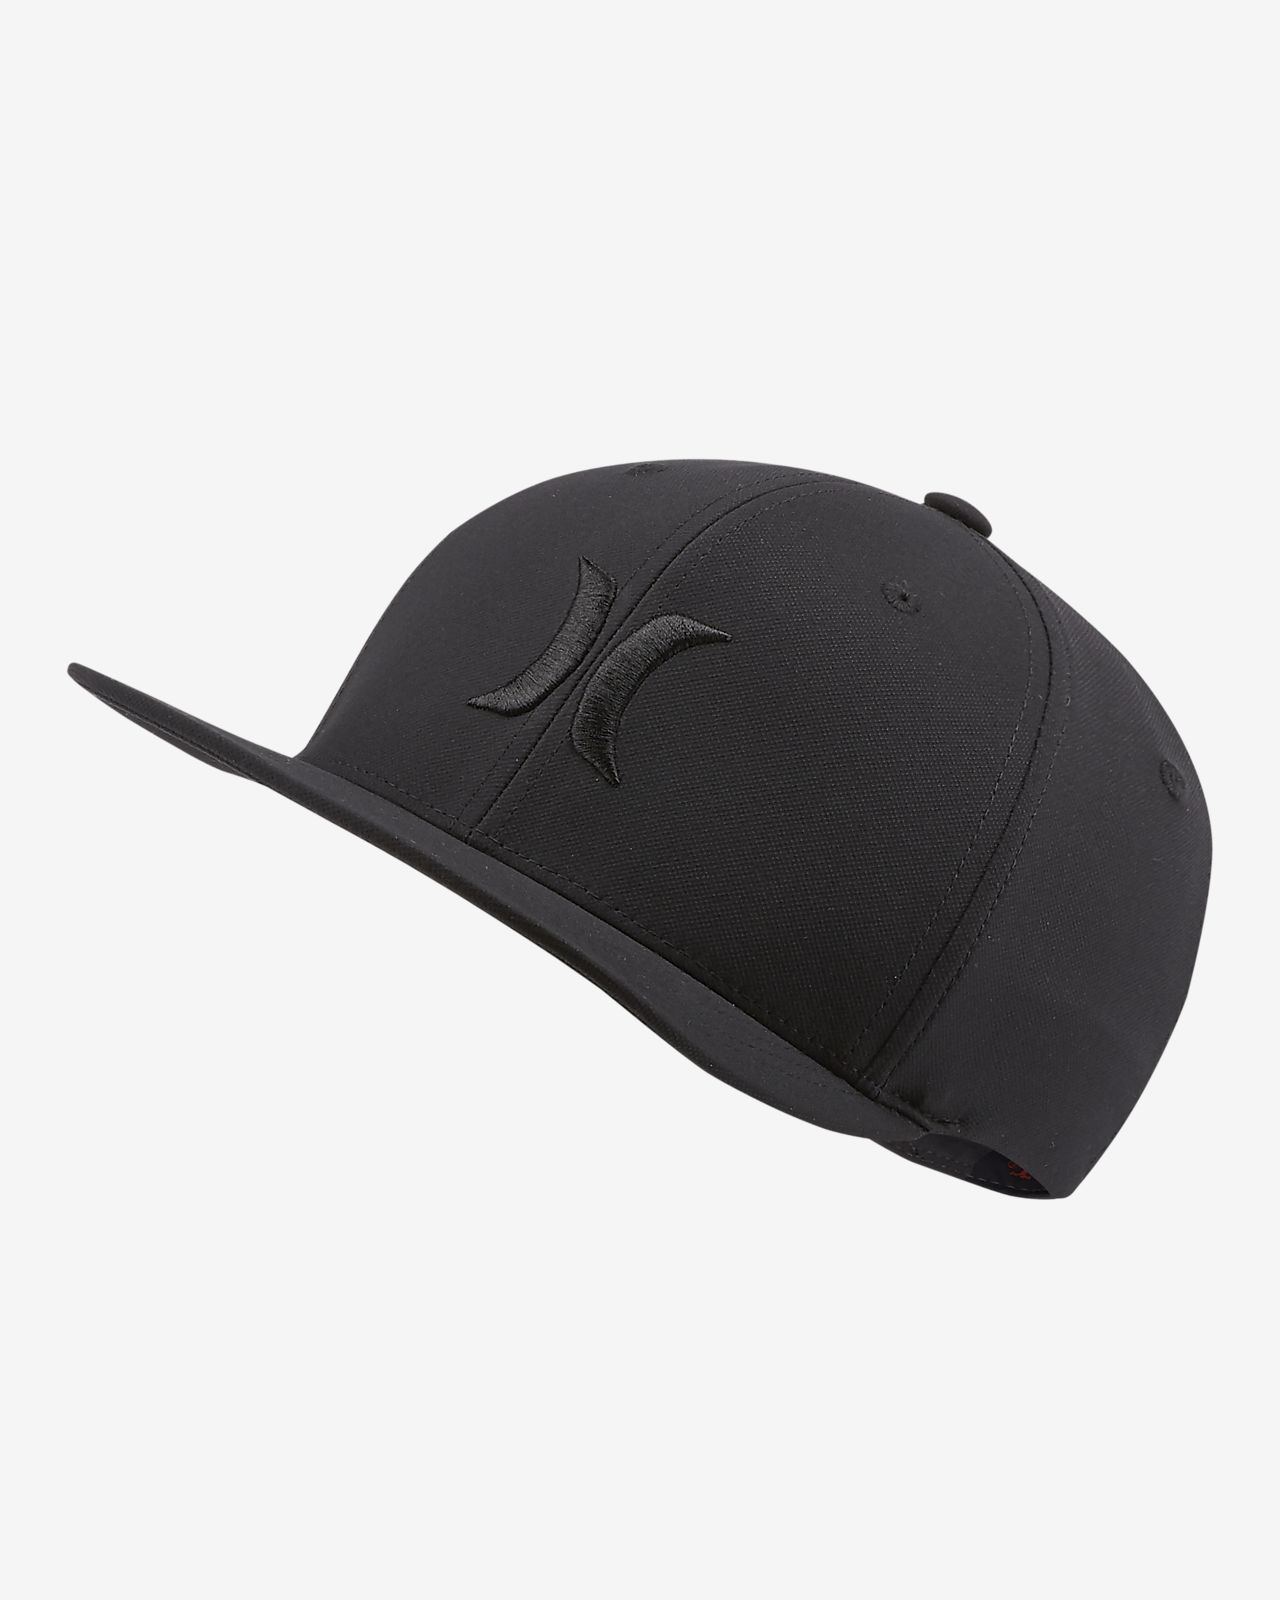 Hurley Dri-FIT One And Only Unisex Fitted Hat